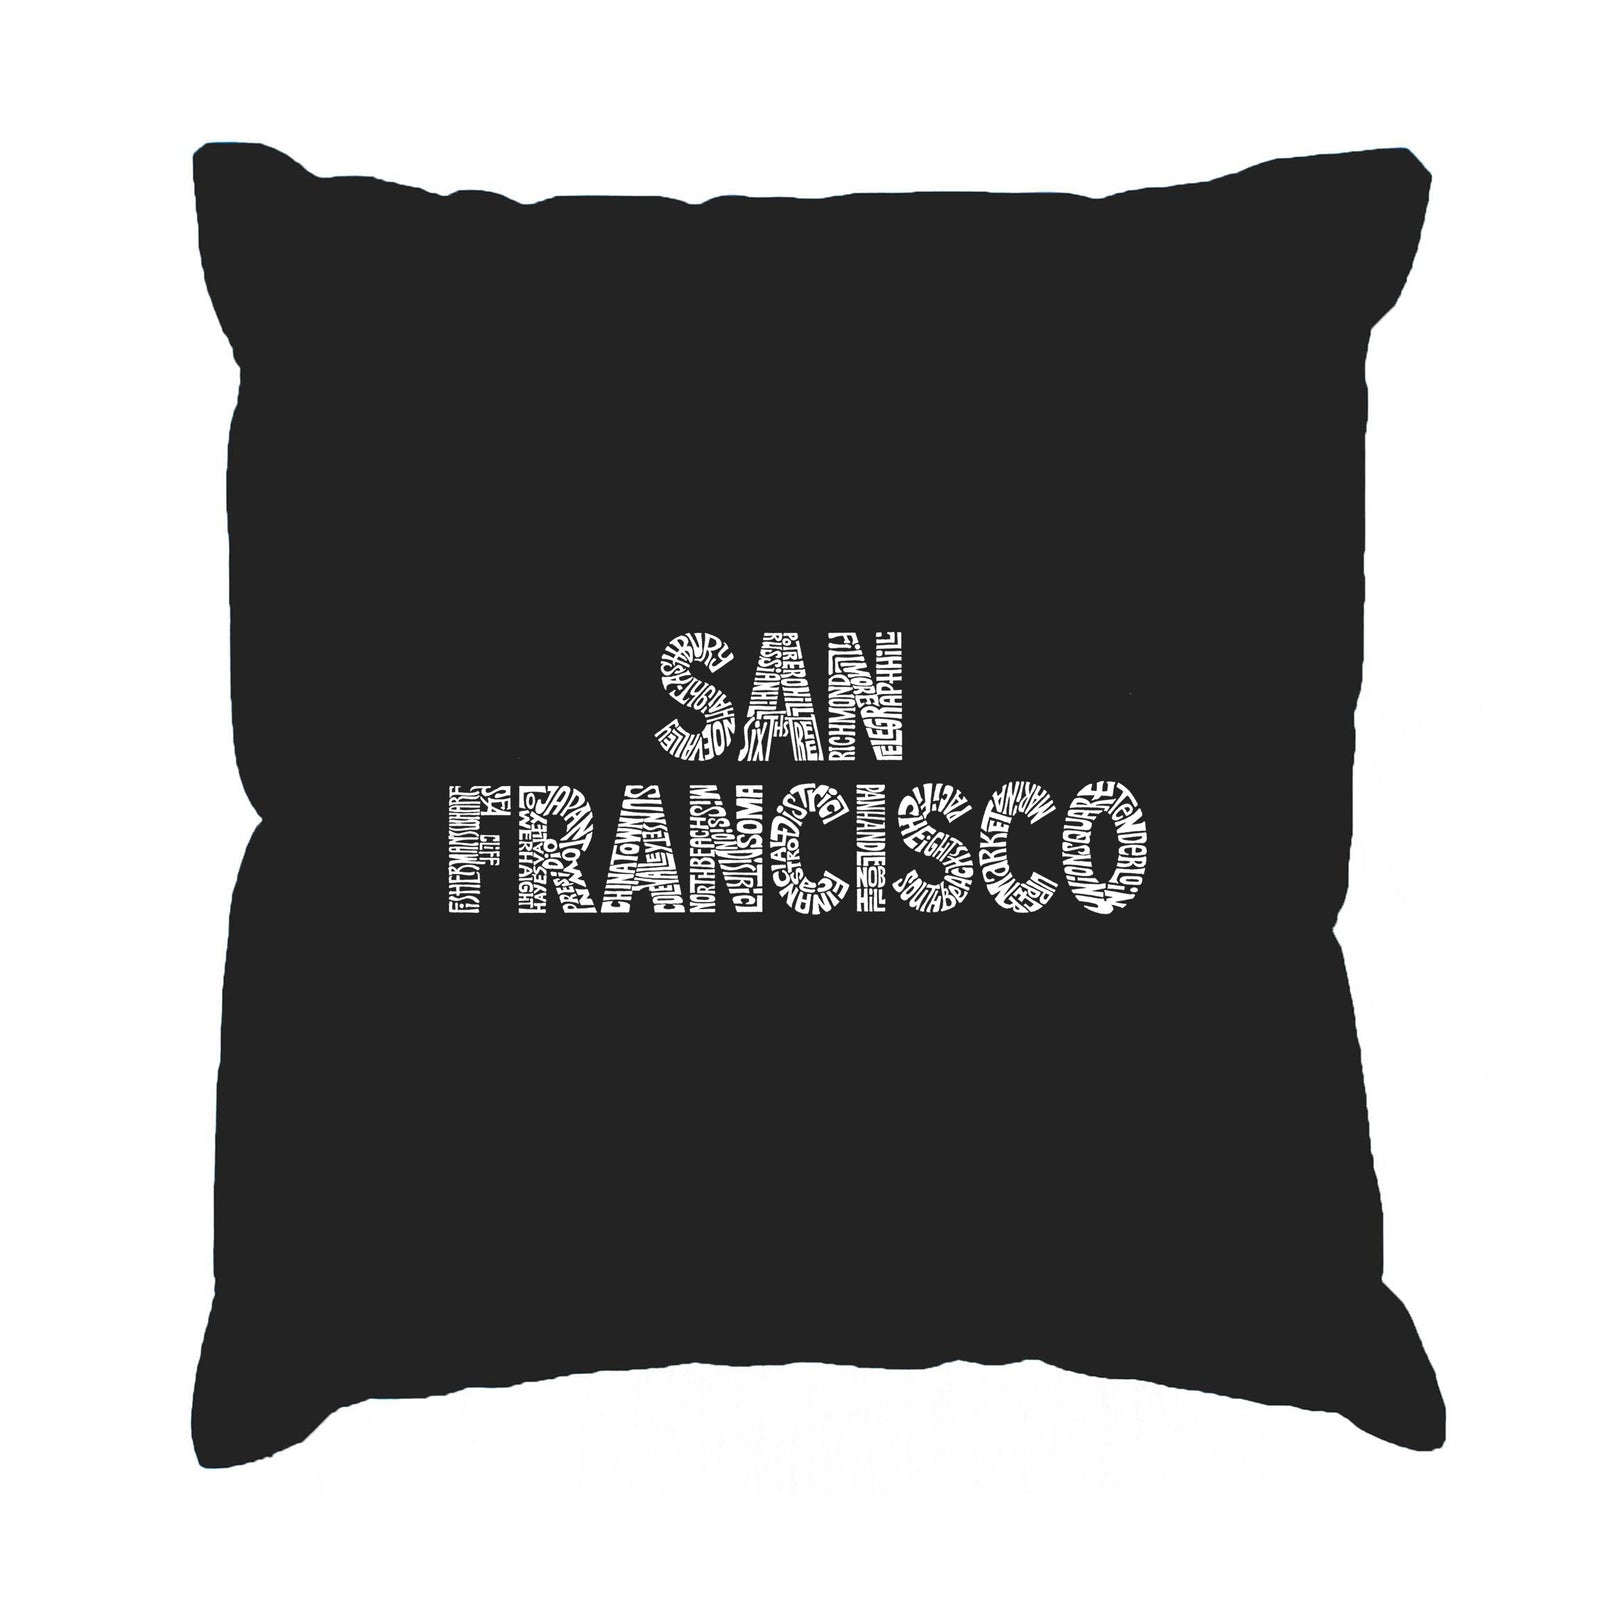 Throw Pillow Cover - SAN FRANCISCO NEIGHBORHOODS